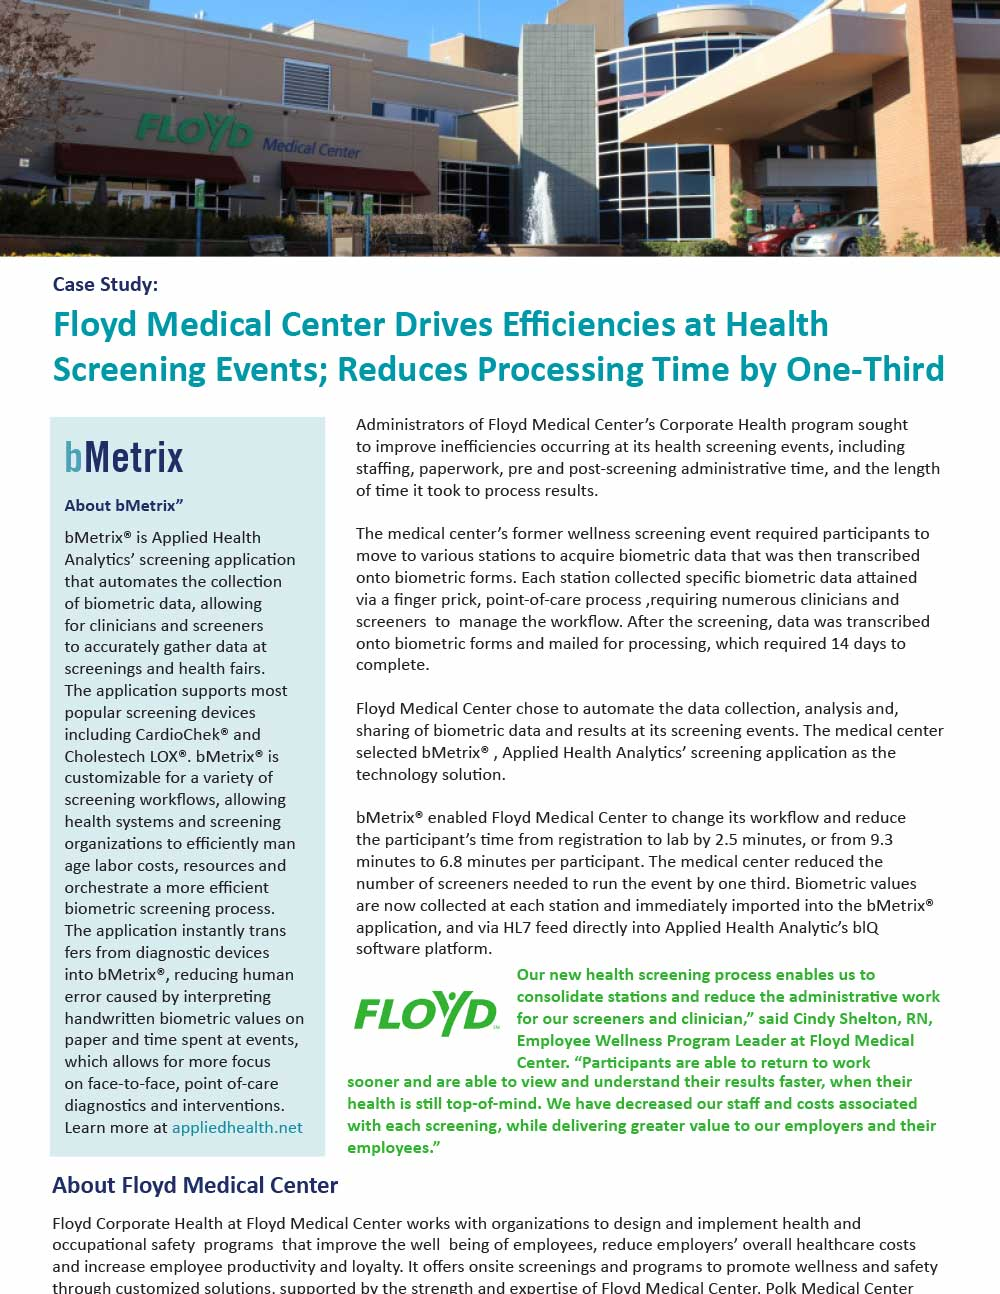 Floyd Medical Center Drives Efficiencies at Health Screening Events; Reduces Processing Time by One-Third